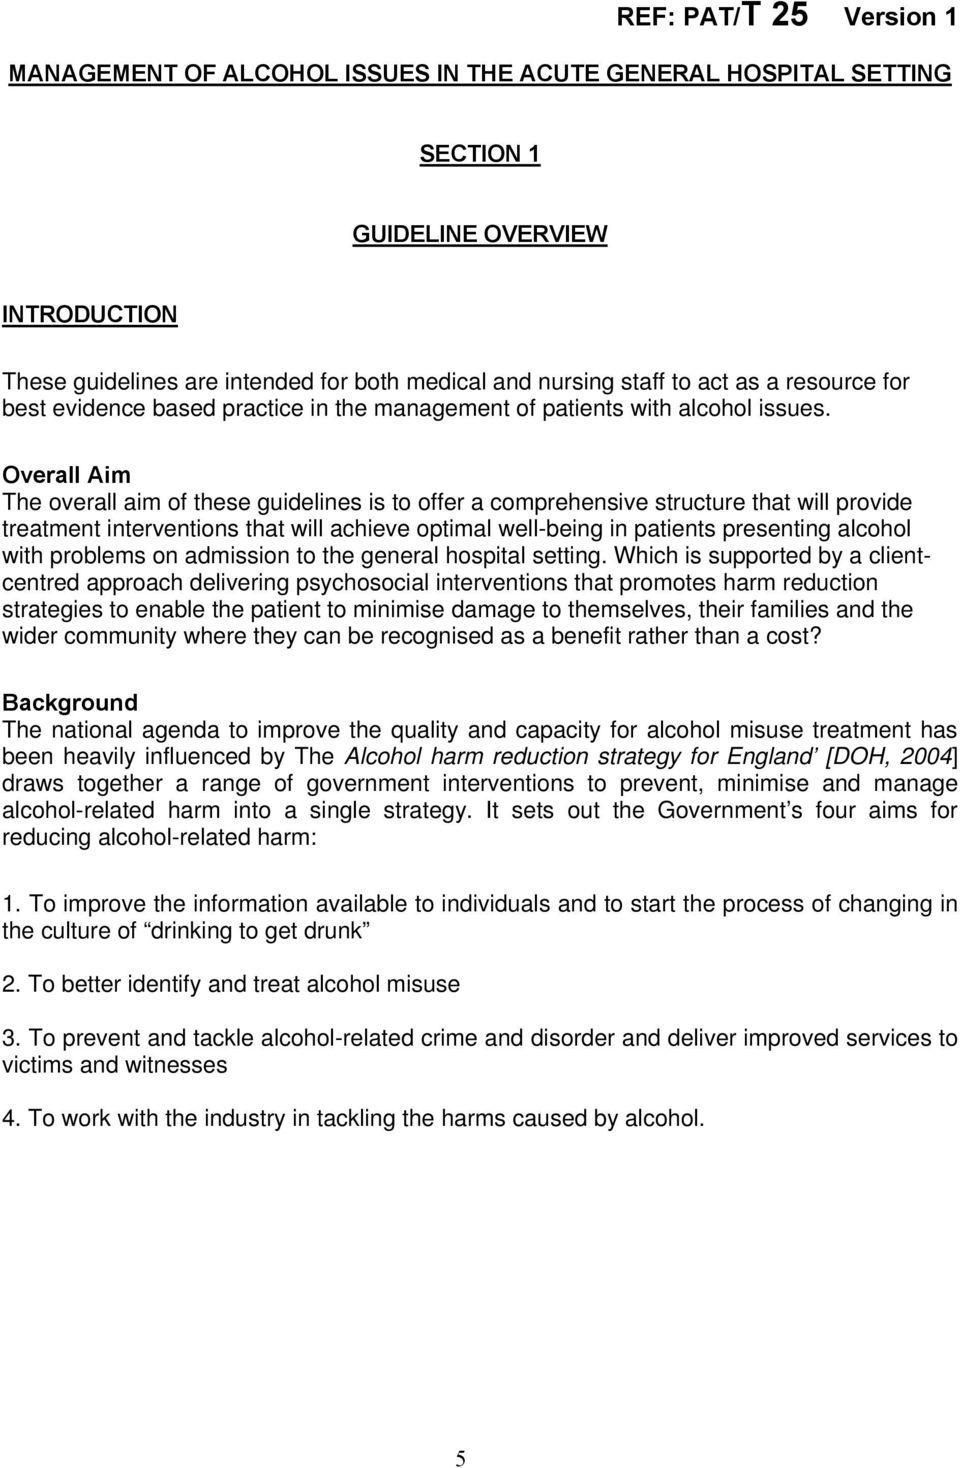 Overall Aim The overall aim of these guidelines is to offer a comprehensive structure that will provide treatment interventions that will achieve optimal well-being in patients presenting alcohol